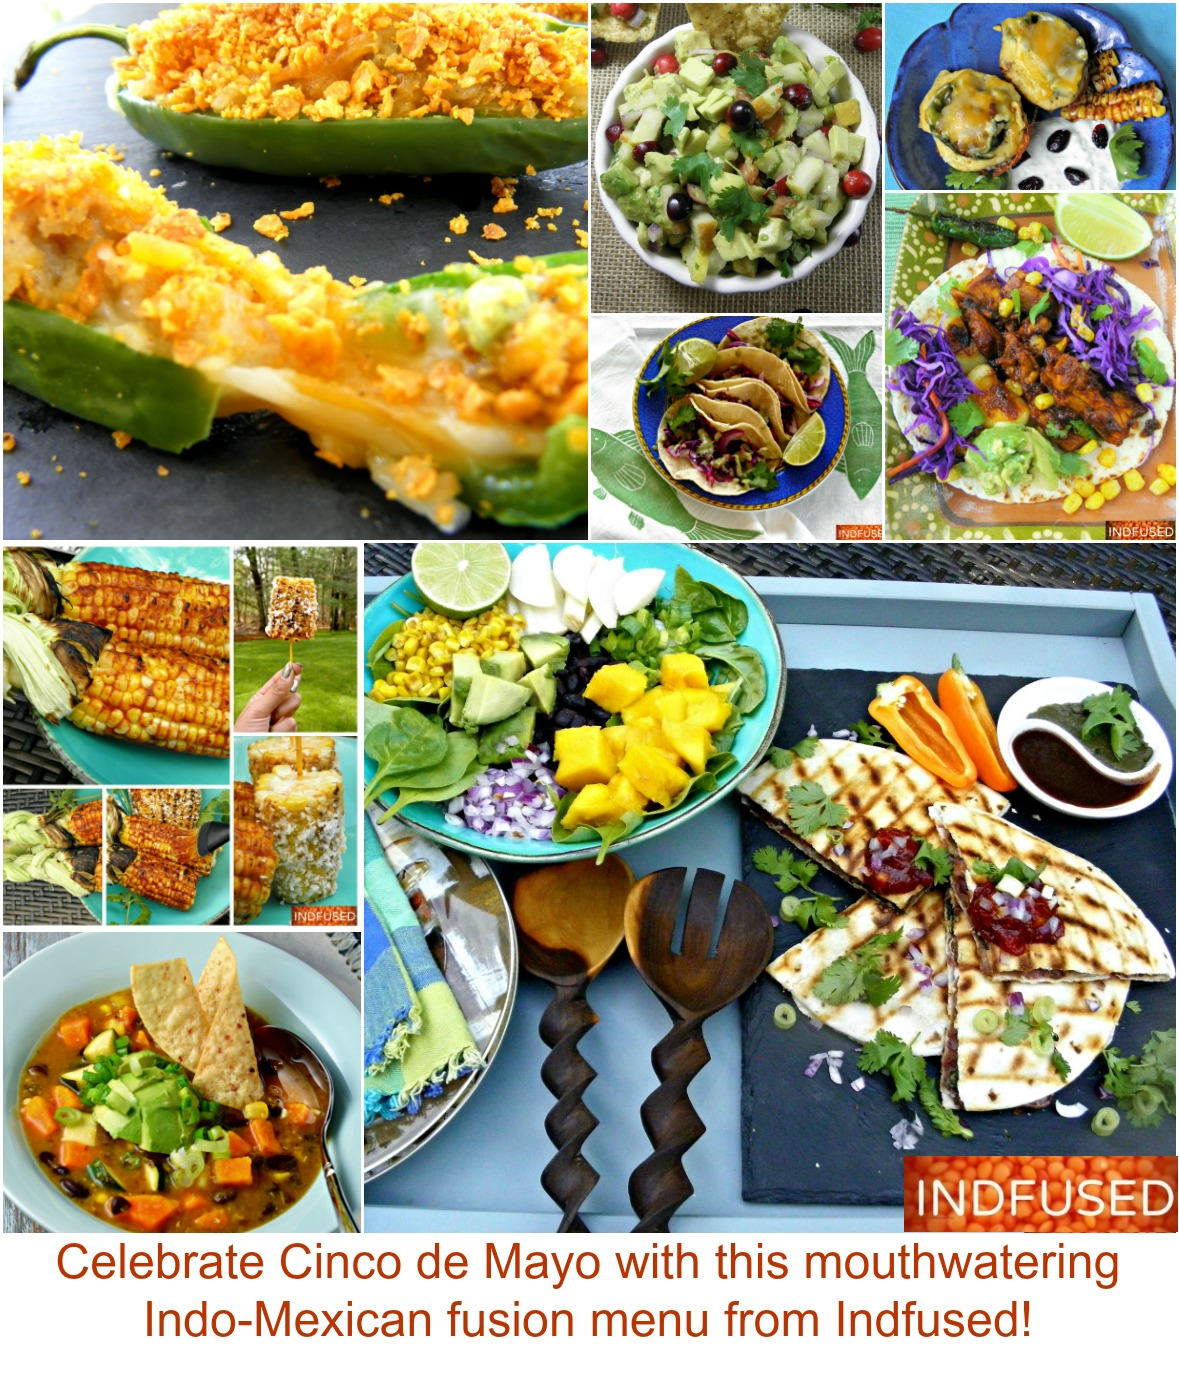 Delicious Indian and Mexican fusion recipes Delicious Indian and Mexican fusion recipes that are easier, healthier and made from local ingredients. Check out the samosadillas, chicken tandoori tacos, stuffed jalapenos, avocado relish and so much more. Serves 4